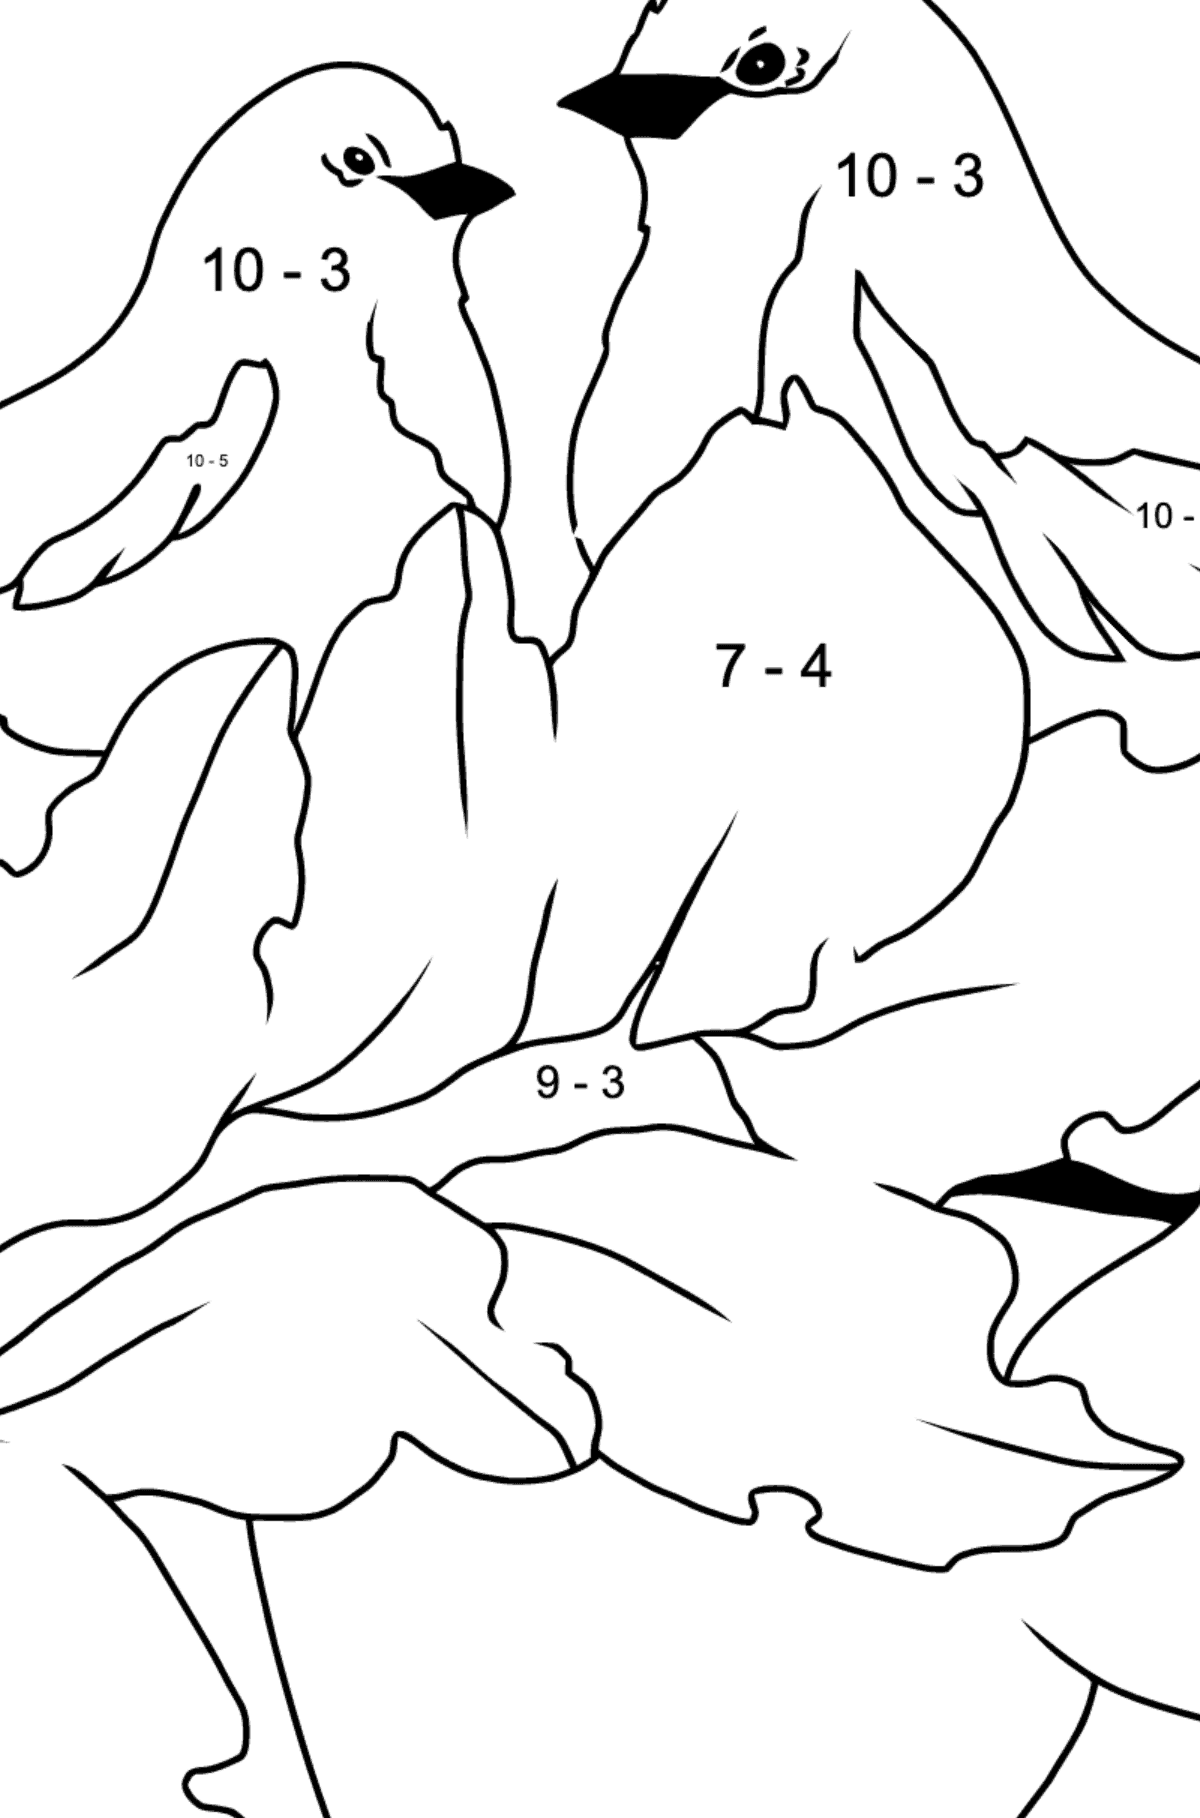 Autumn Coloring Page - Birds on the Branch of an Apple Tree - Math Coloring - Subtraction for Kids